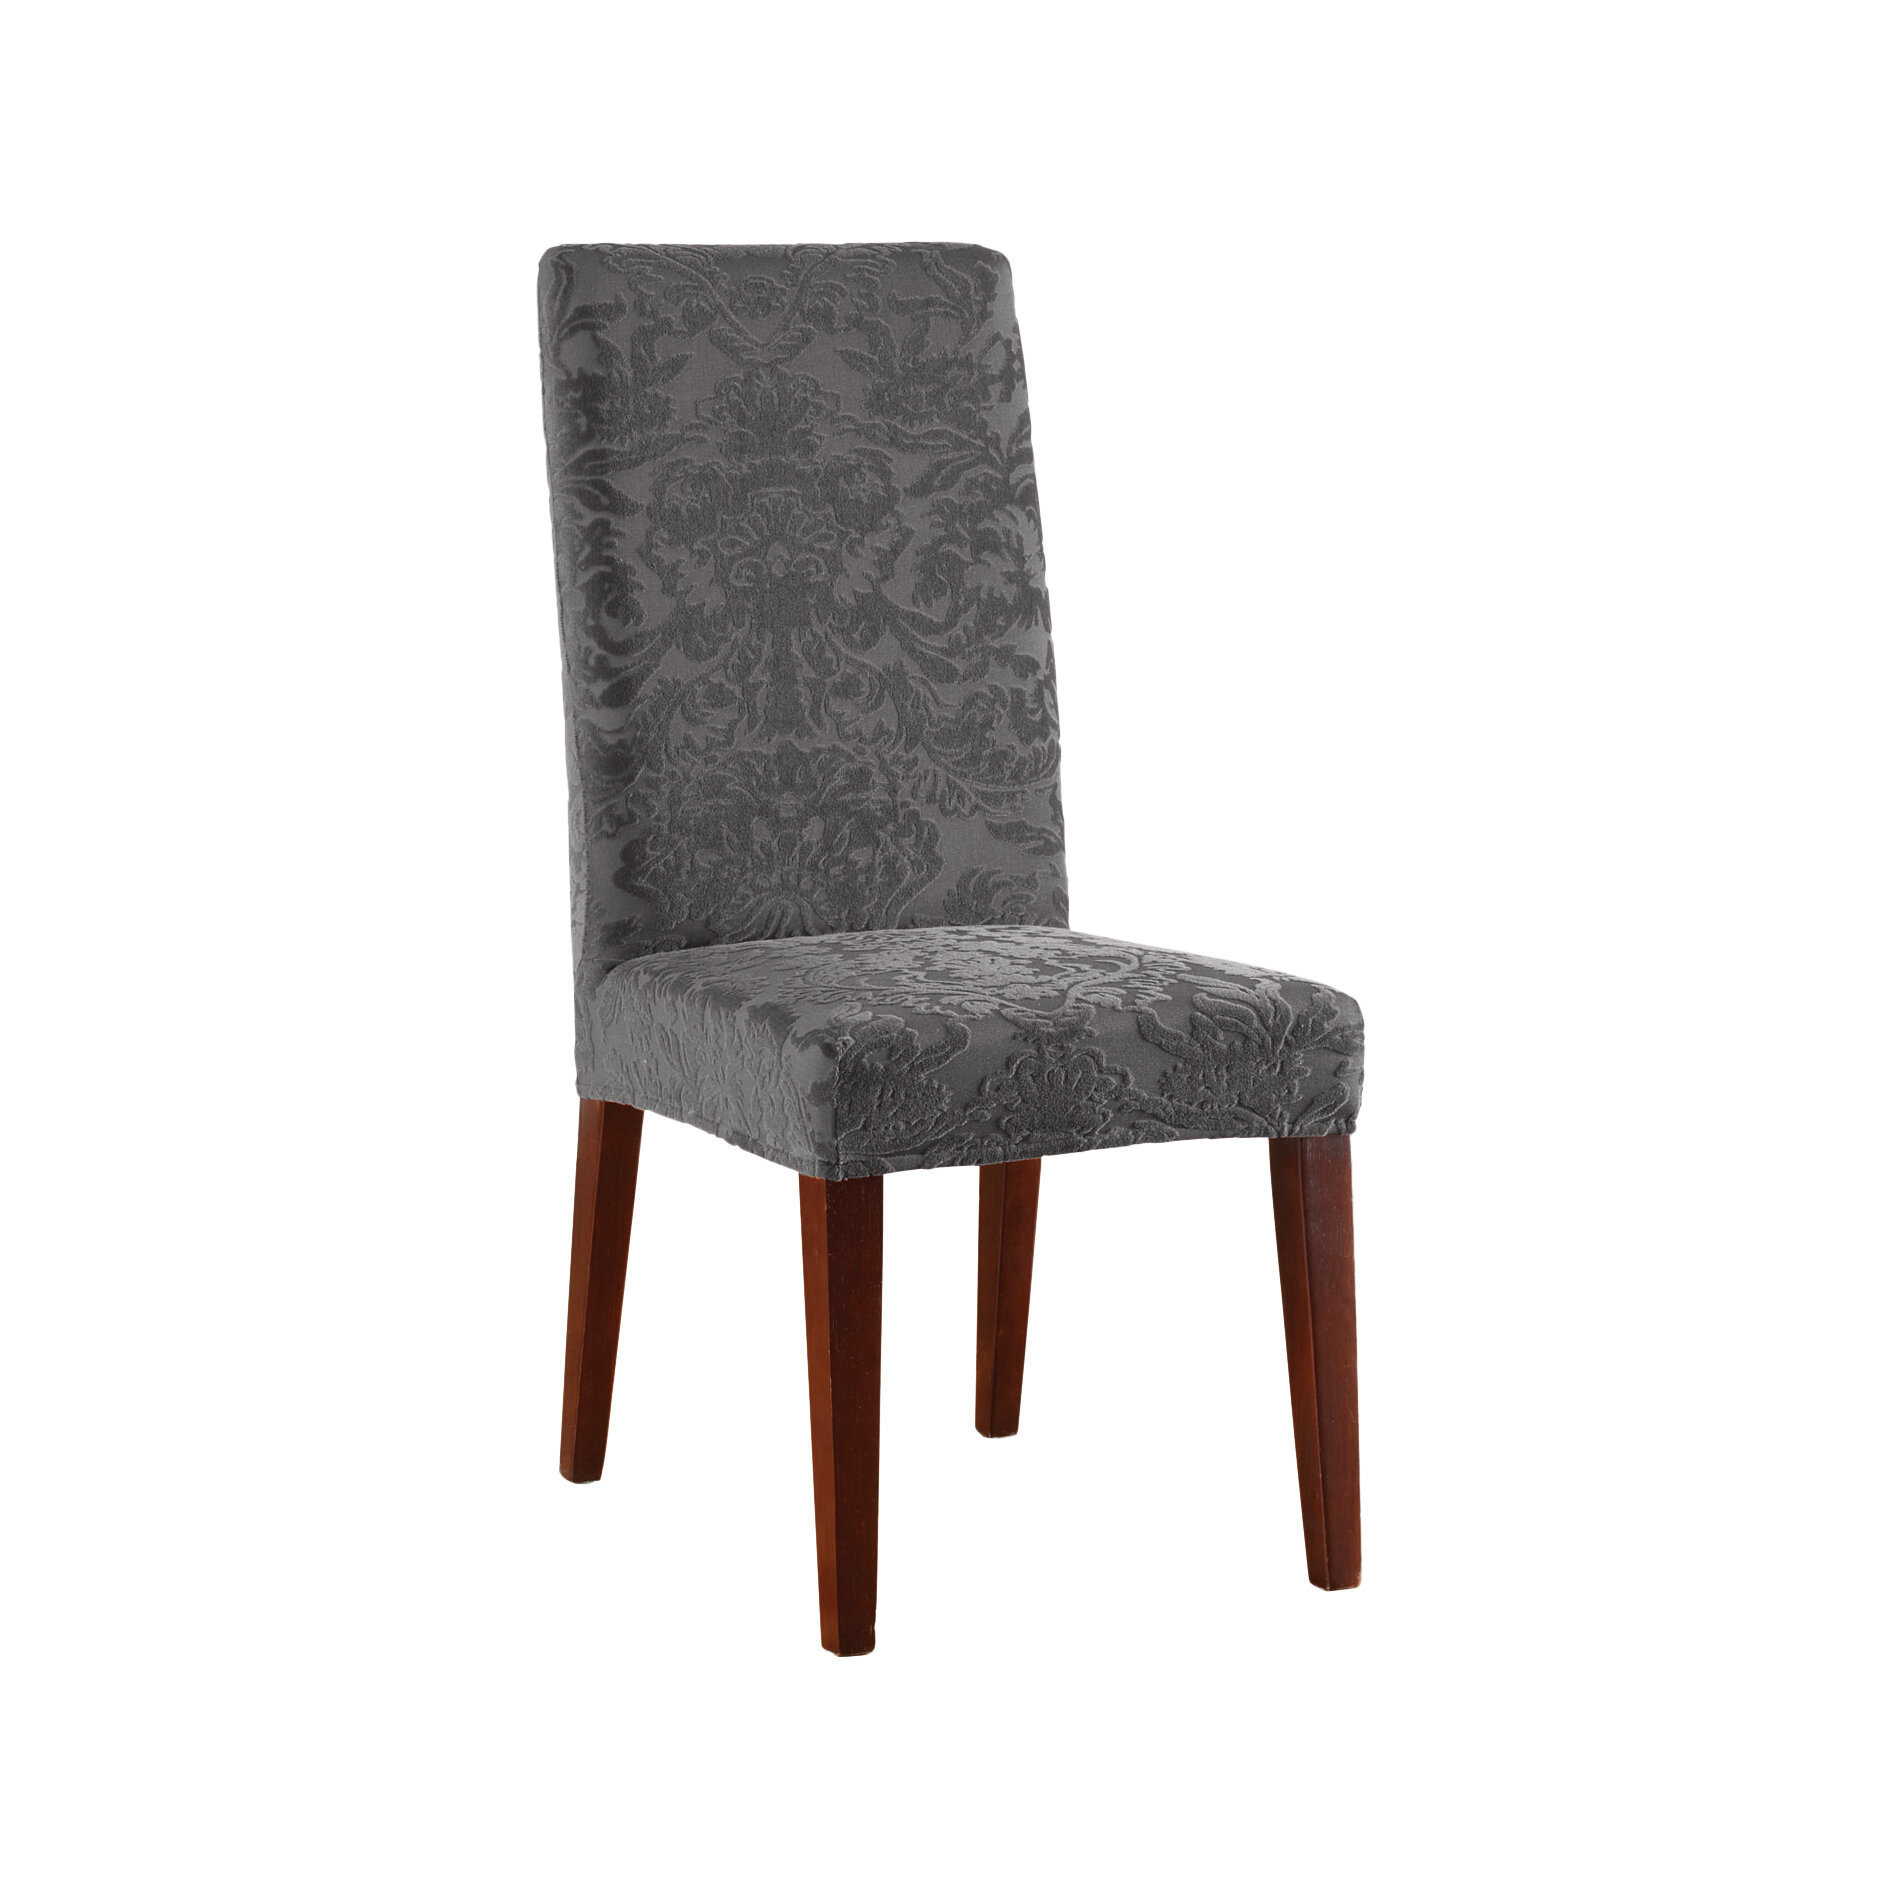 Ordinaire Sure Fit Stretch Jacquard Damask Dining Chair Slipcover U0026 Reviews | Wayfair